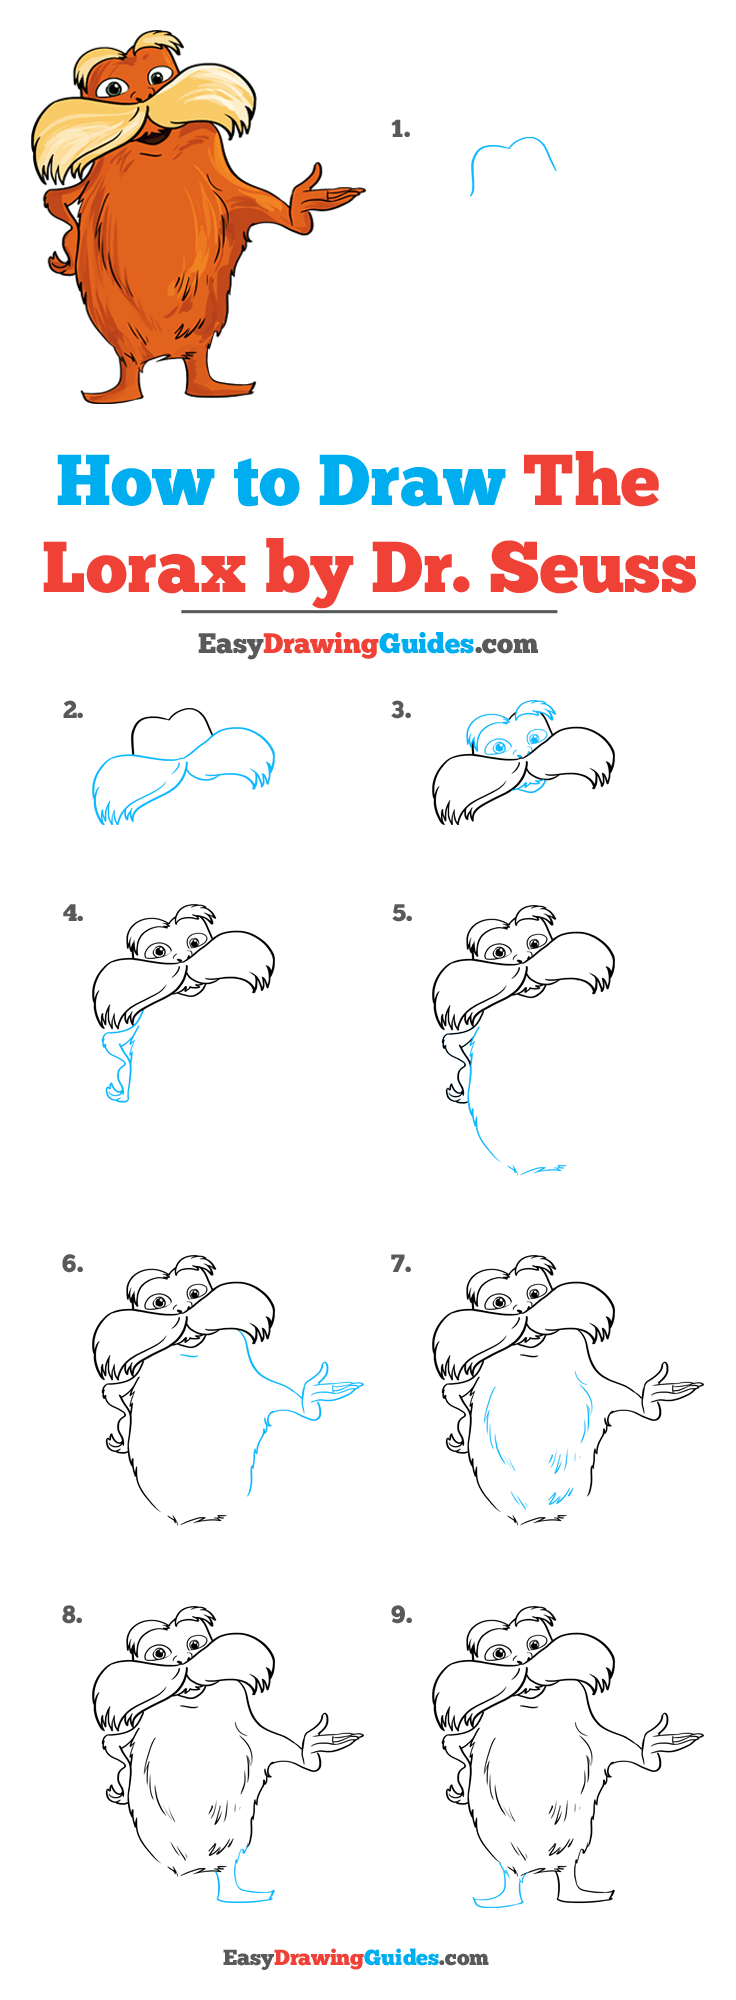 How to Draw The Lorax by Dr. Seuss Step by Step Tutorial Image